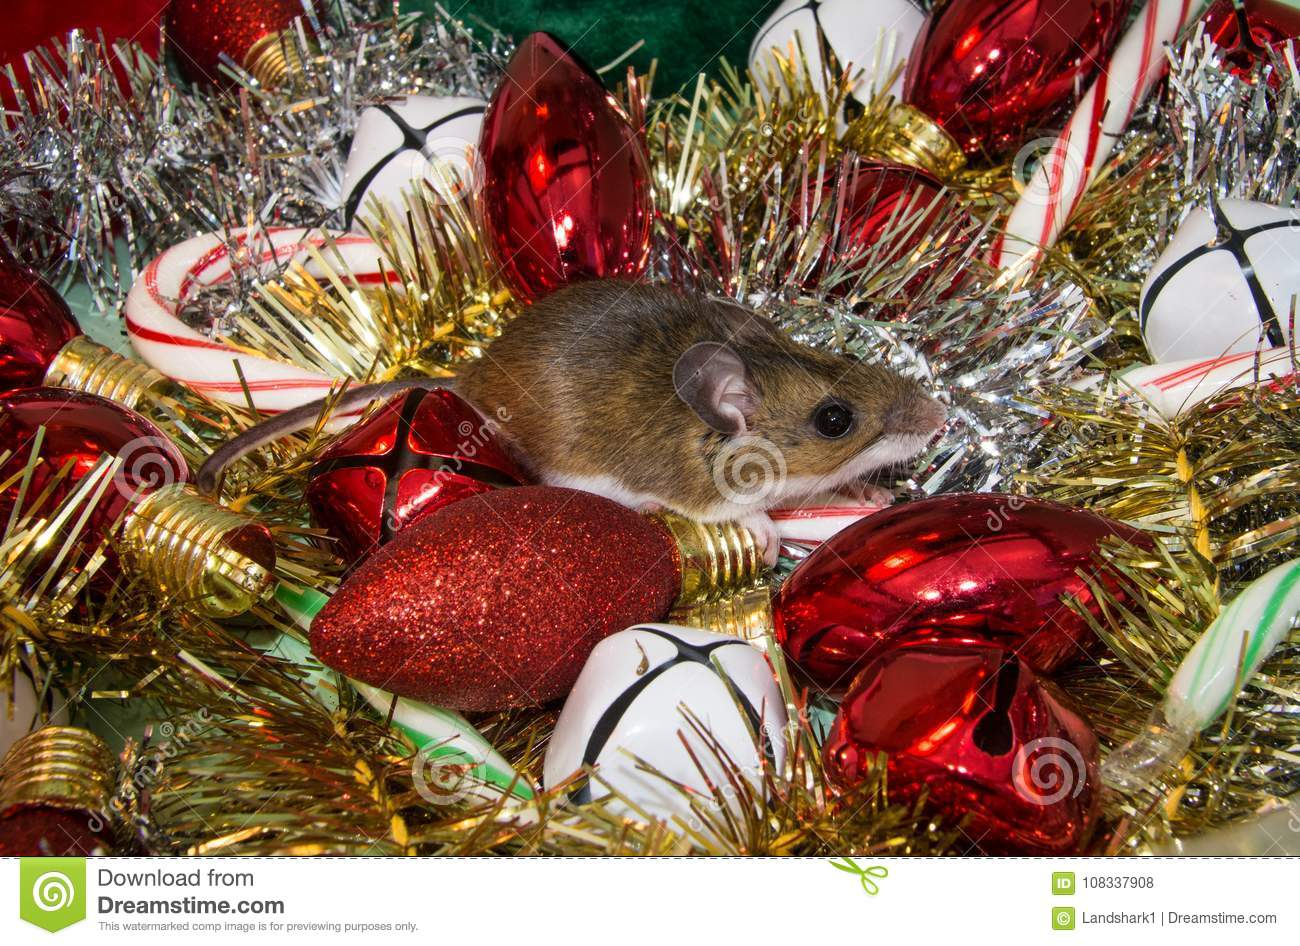 a side view of a house mouse sitting on xmas decorations white and red bells gold and silver garland red bulbs and green and red and green candy canes - Christmas Mice Decorations